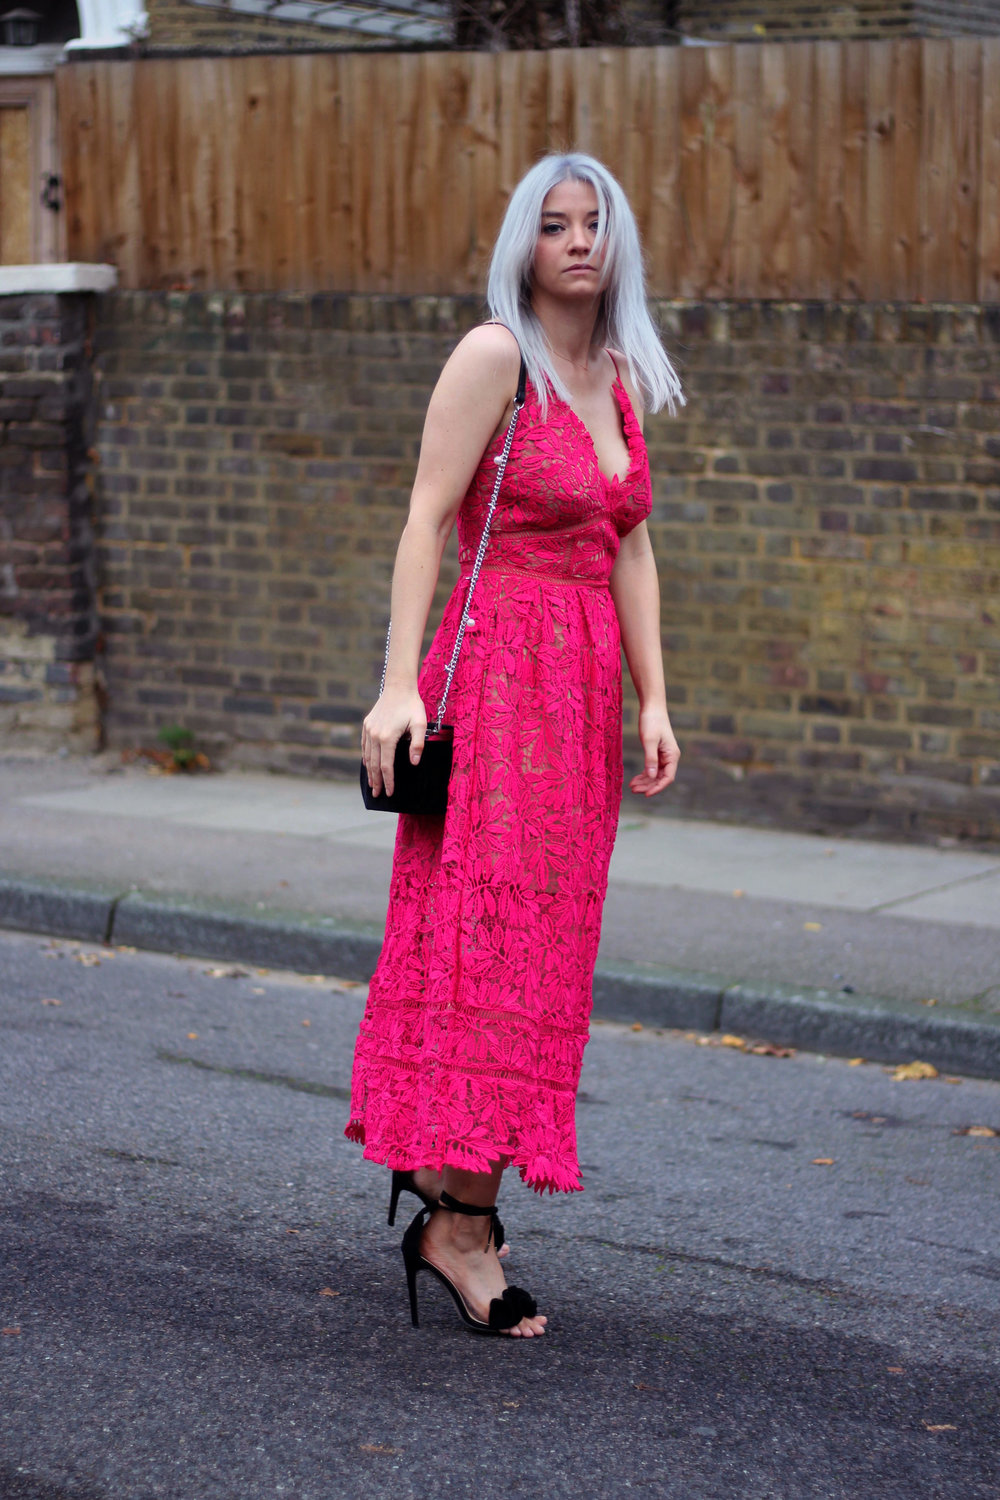 red lace maxi dress, strappy sandals, grey hair, northern magpie, joey taylor 7